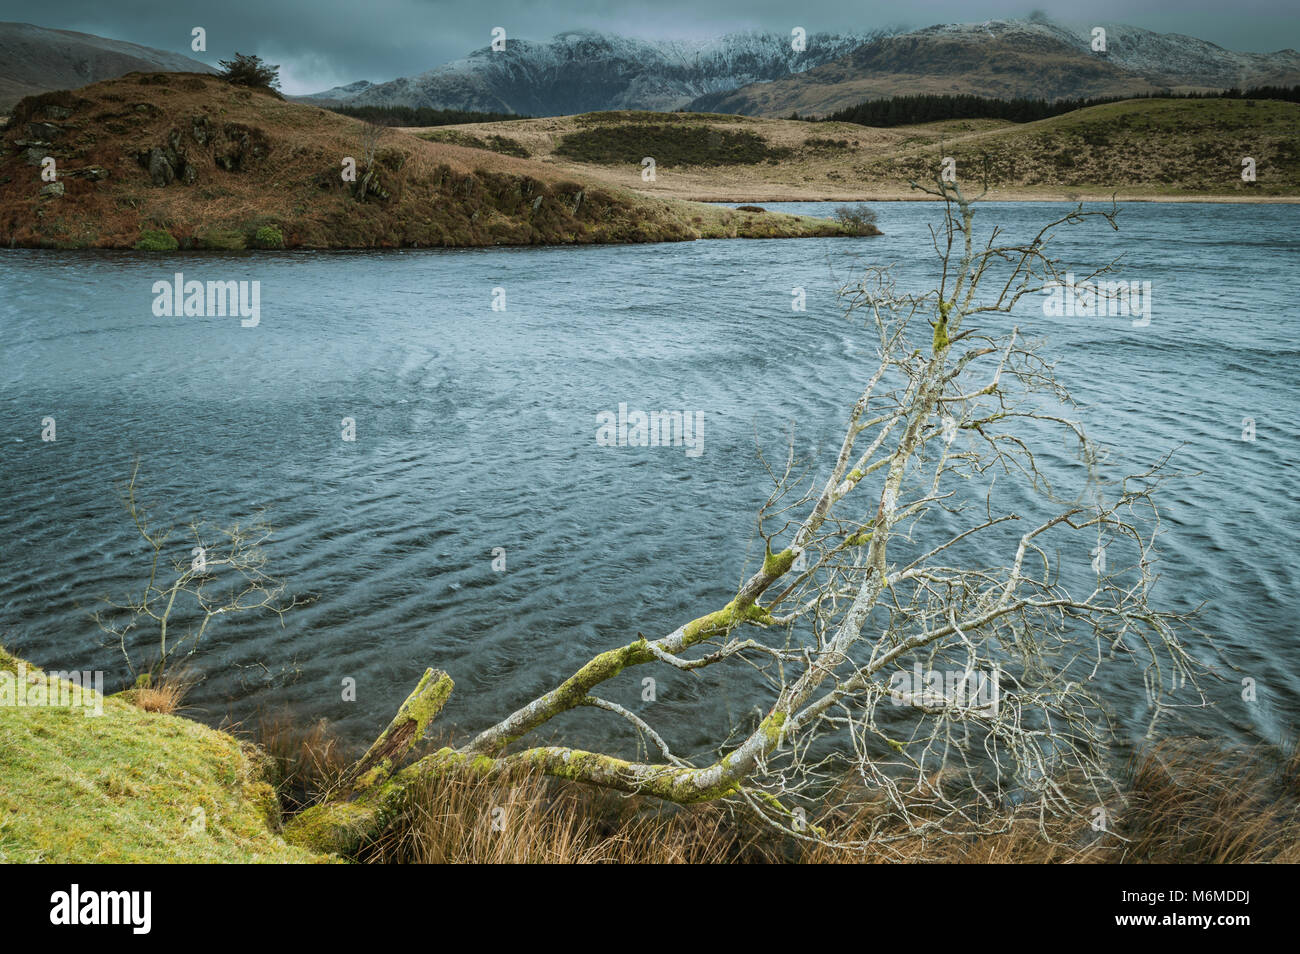 A lone tree juts into the water at Llyn Dywarchen in the Snowdonia National Park.A foreboding snow covered Mount - Stock Image